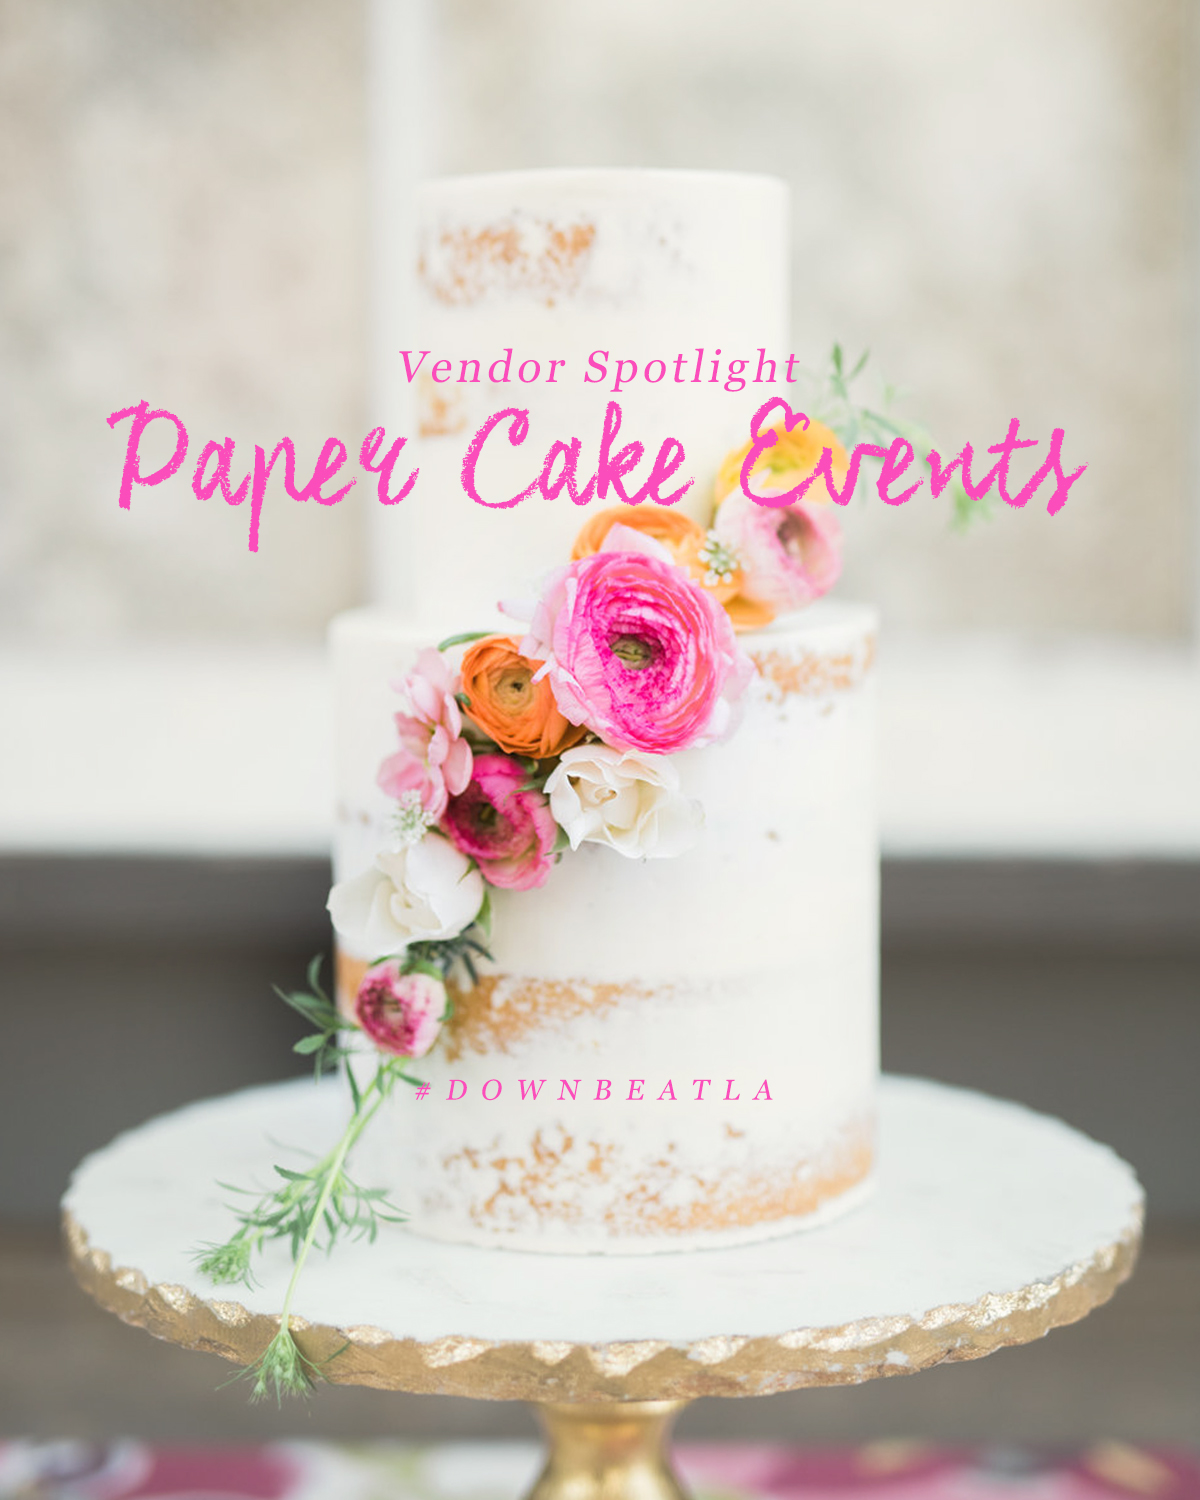 Paper-Cake-Events.jpg